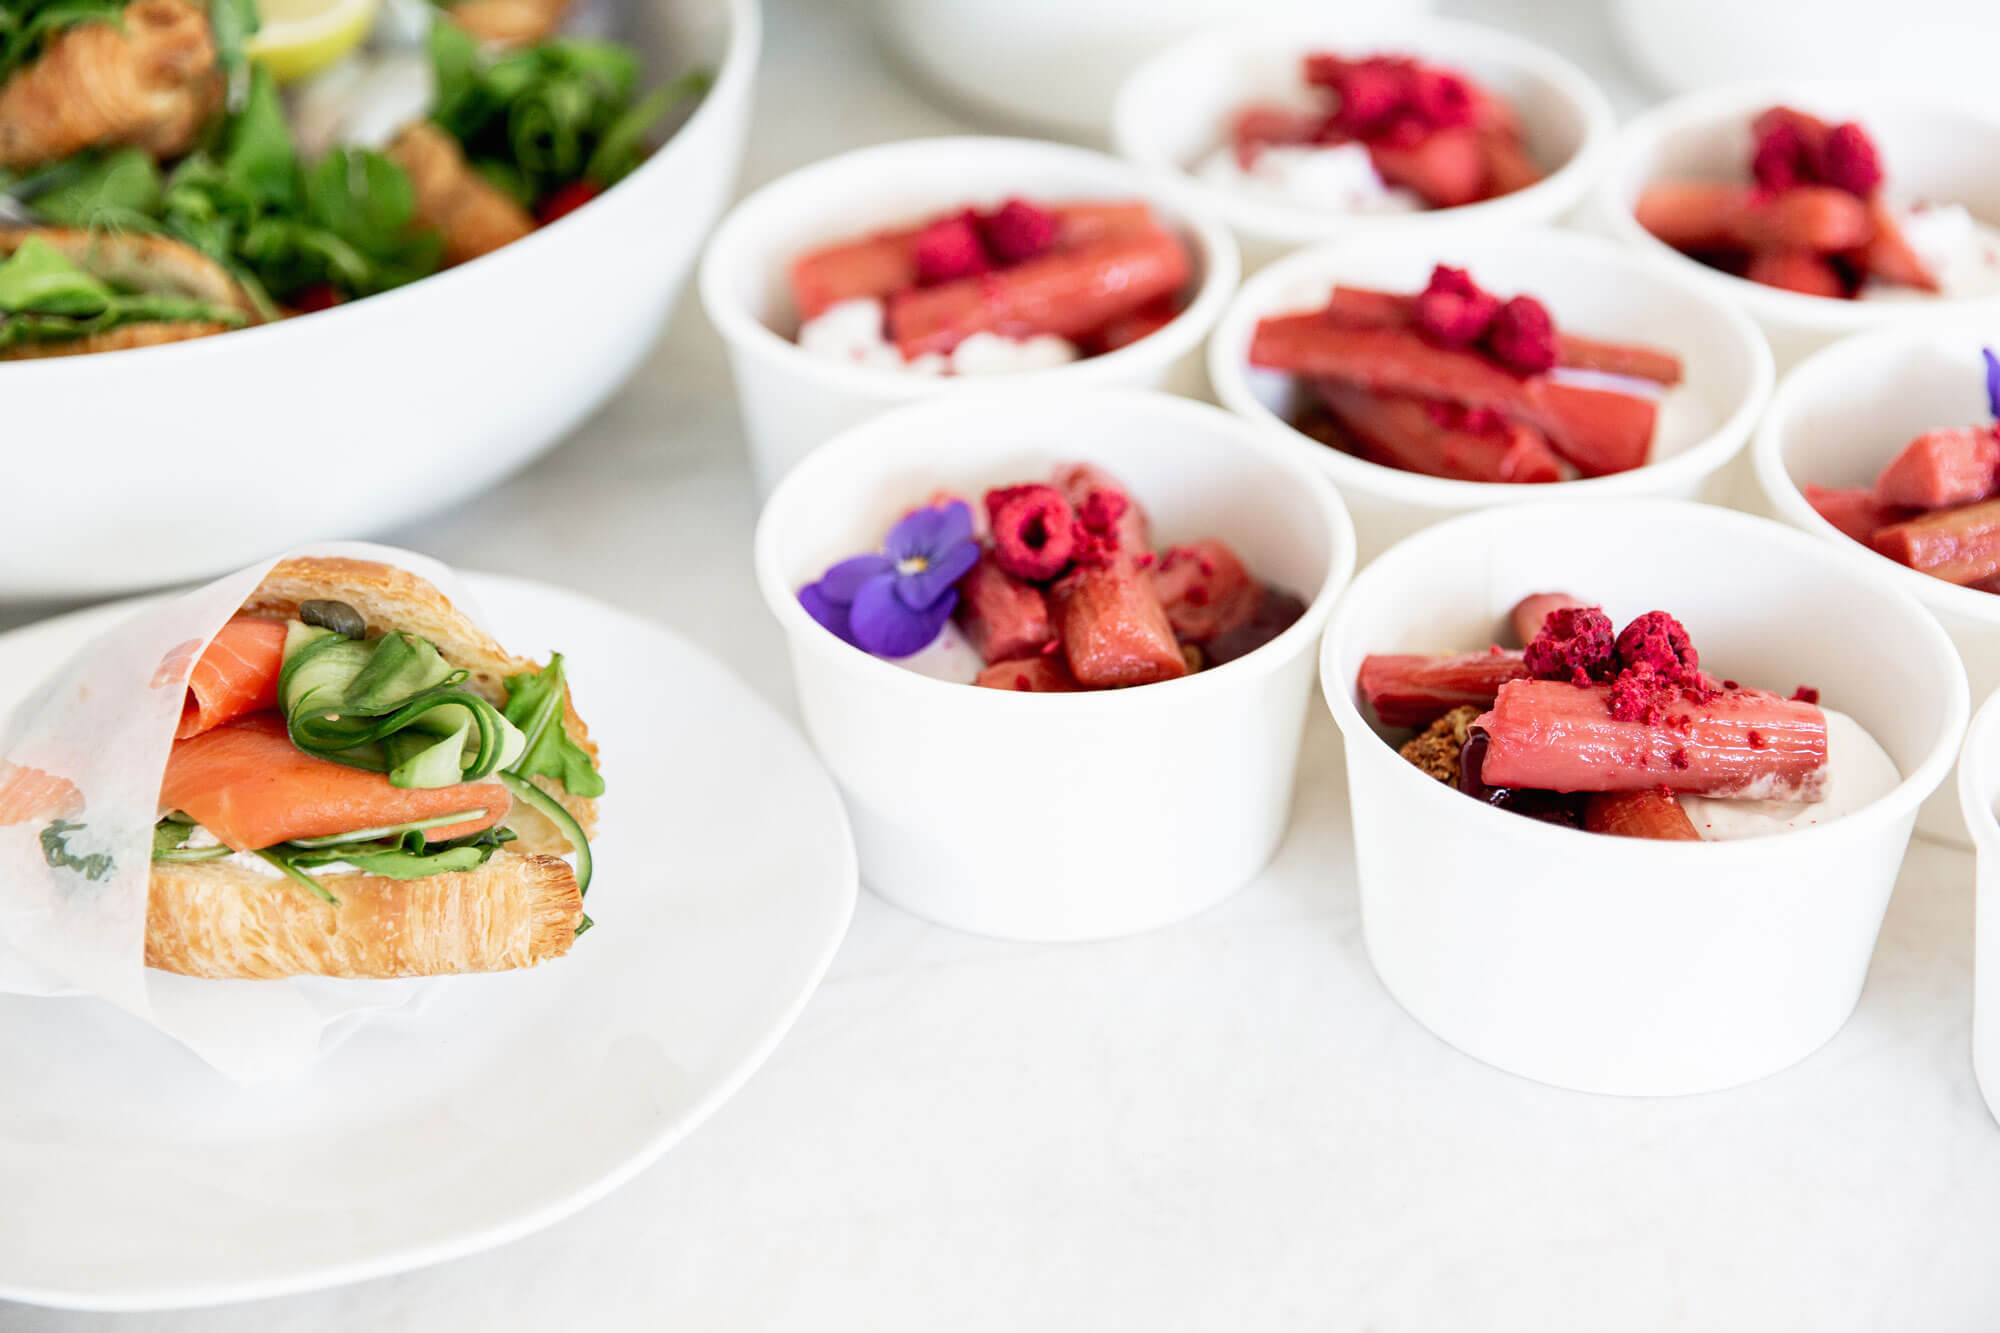 Salmon Croissant and Fruit Pots from Catroux's Breakfast Catering Menu